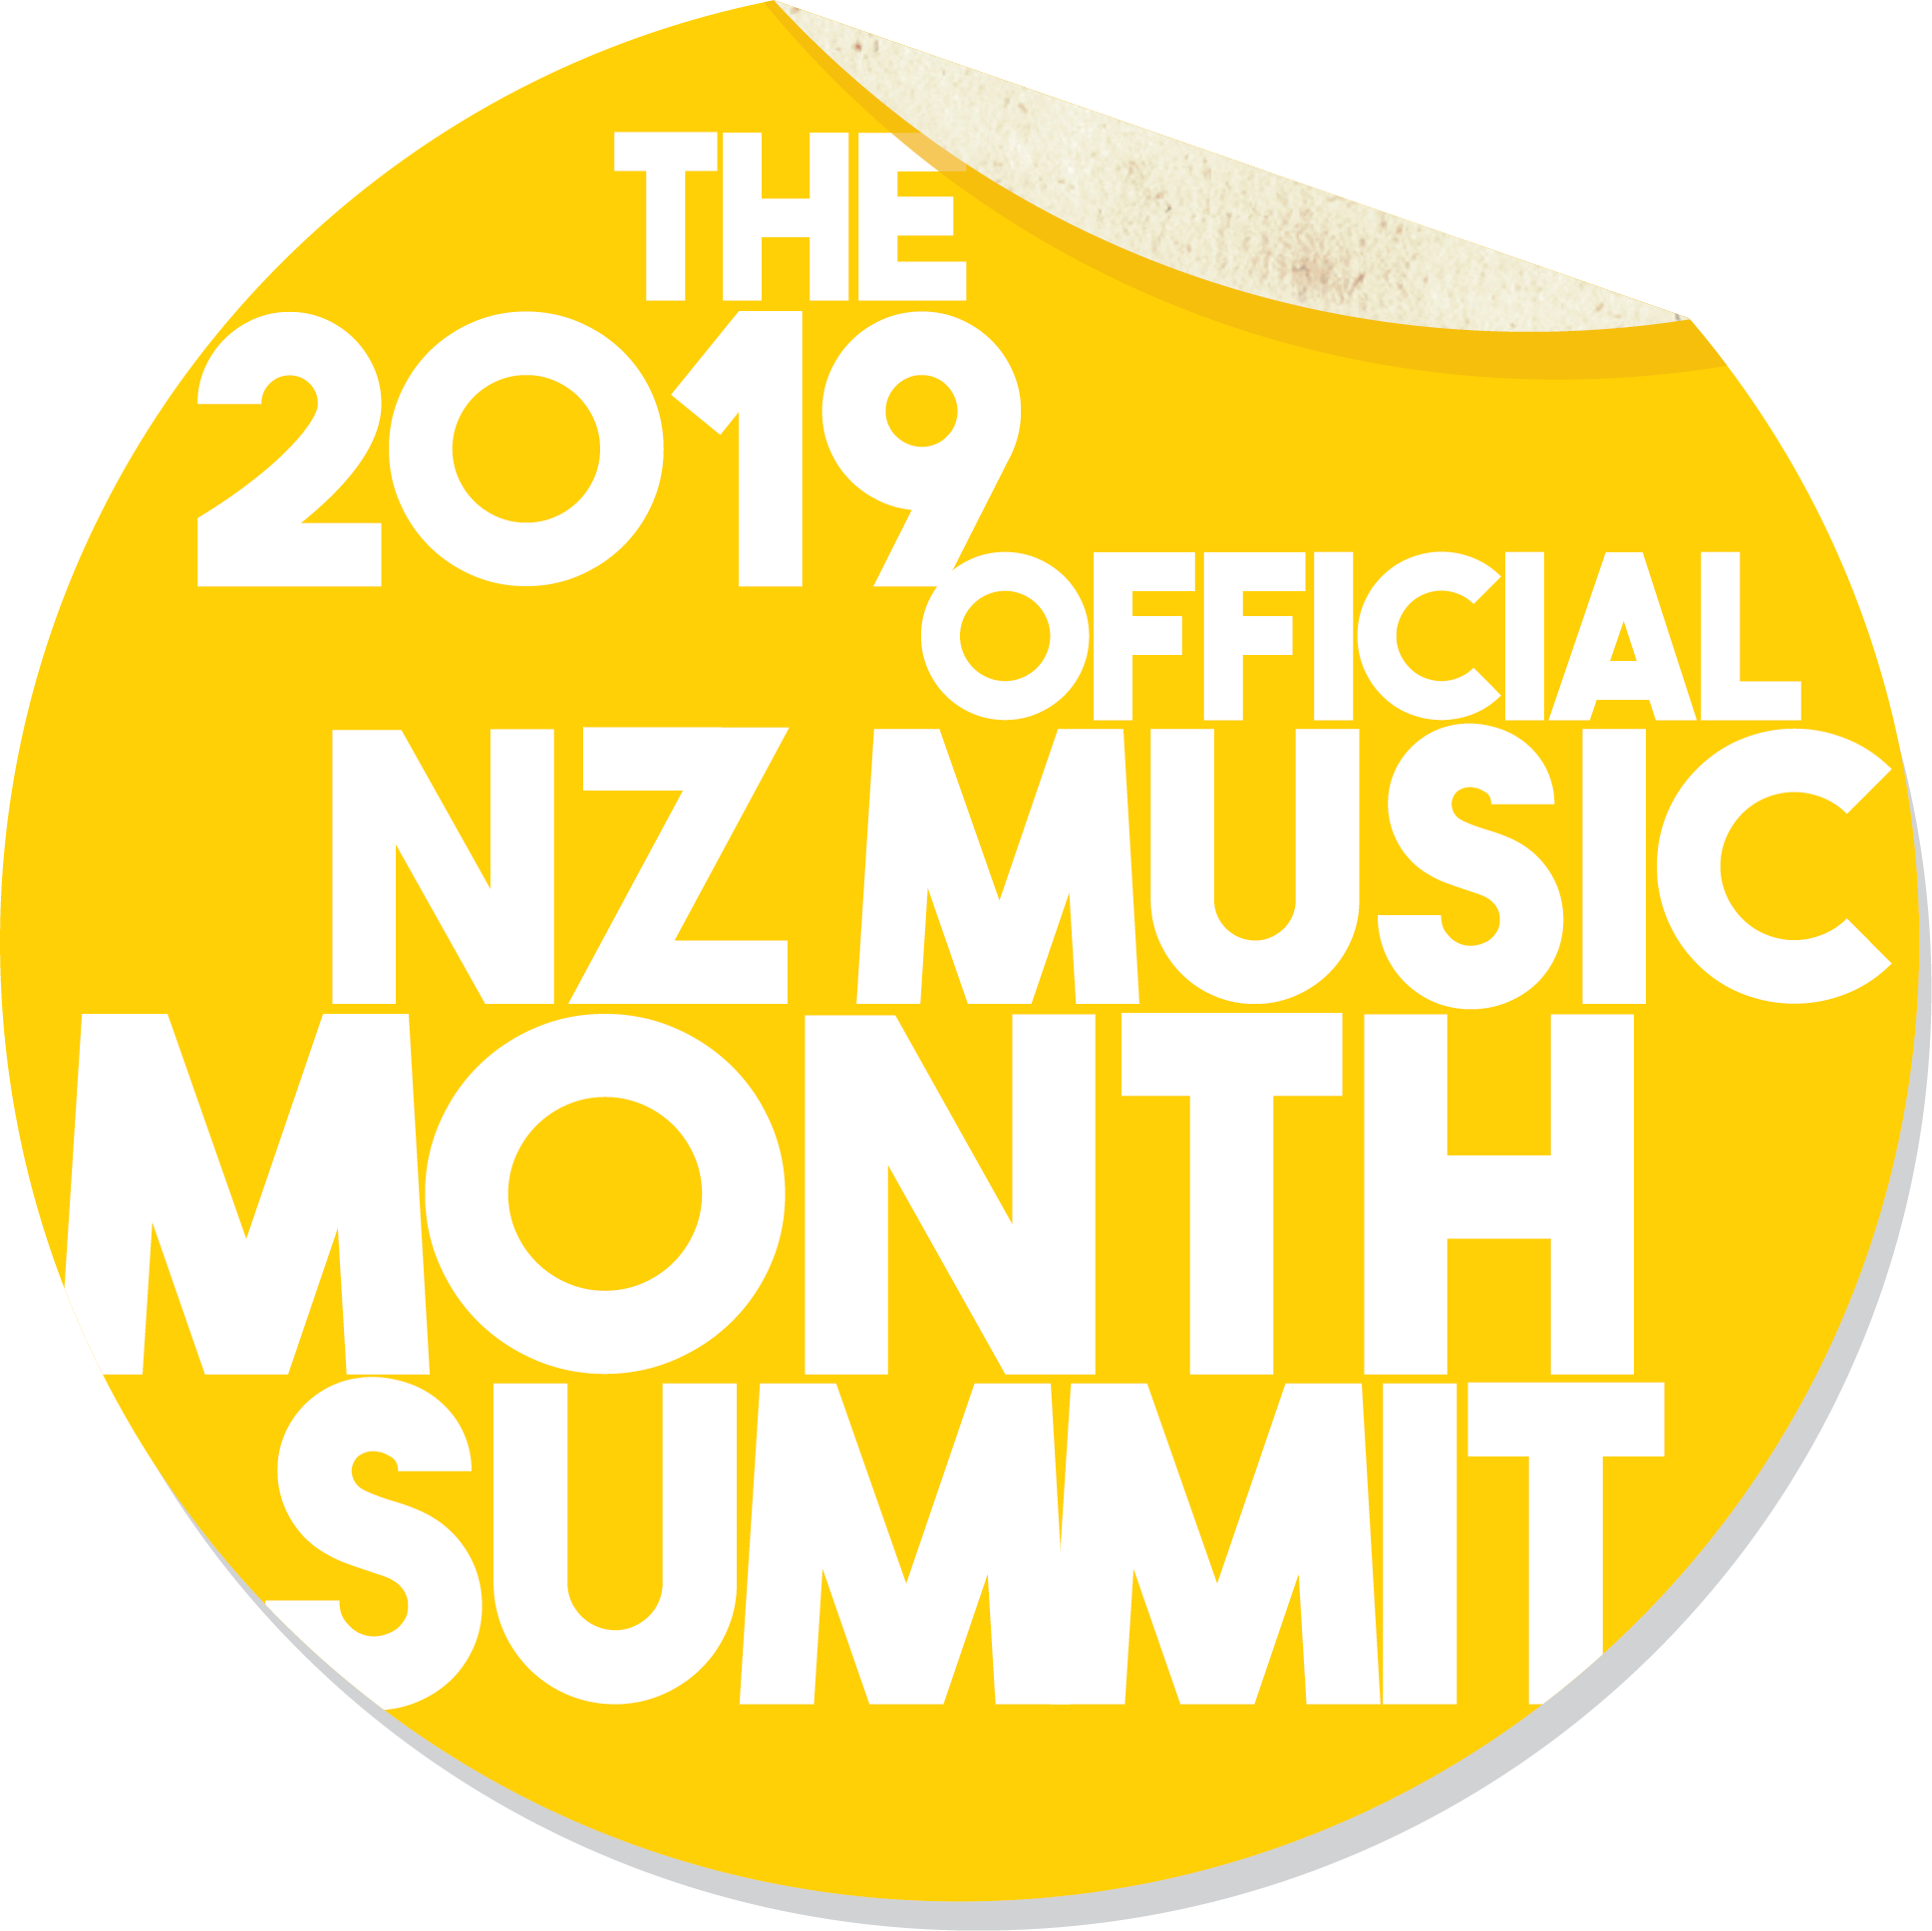 NZ-MUSIC-SUMMIT-2019-LOGO.png